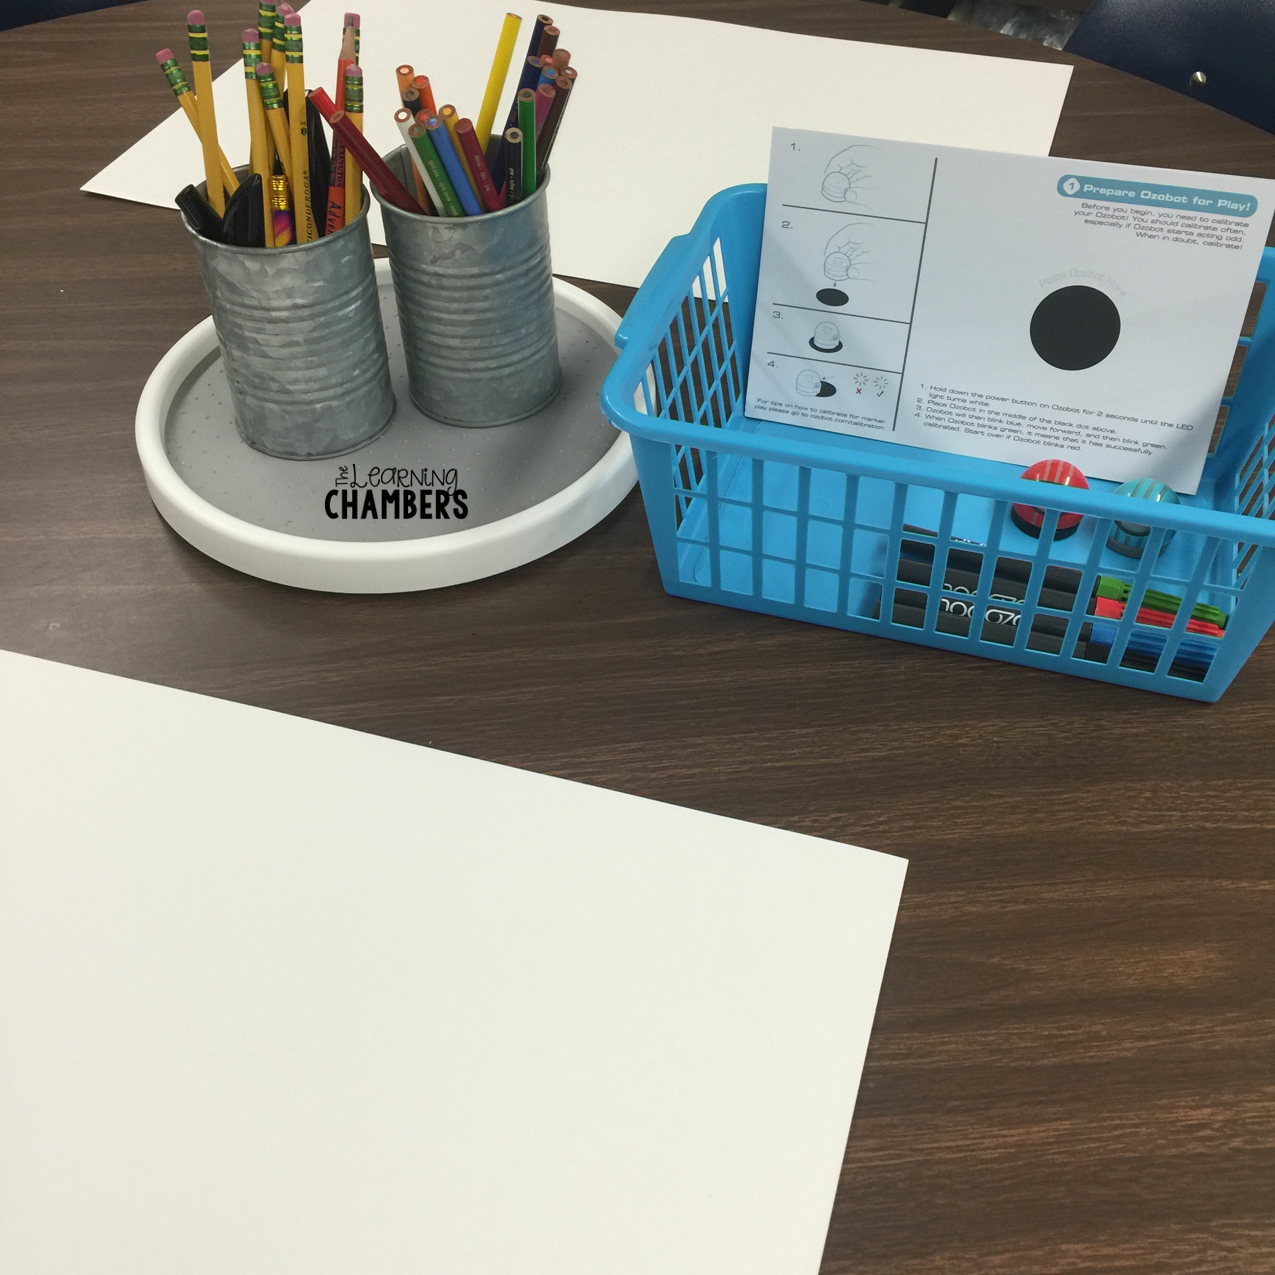 ozobot into station | makerspace | Pinterest | Robot and Maths